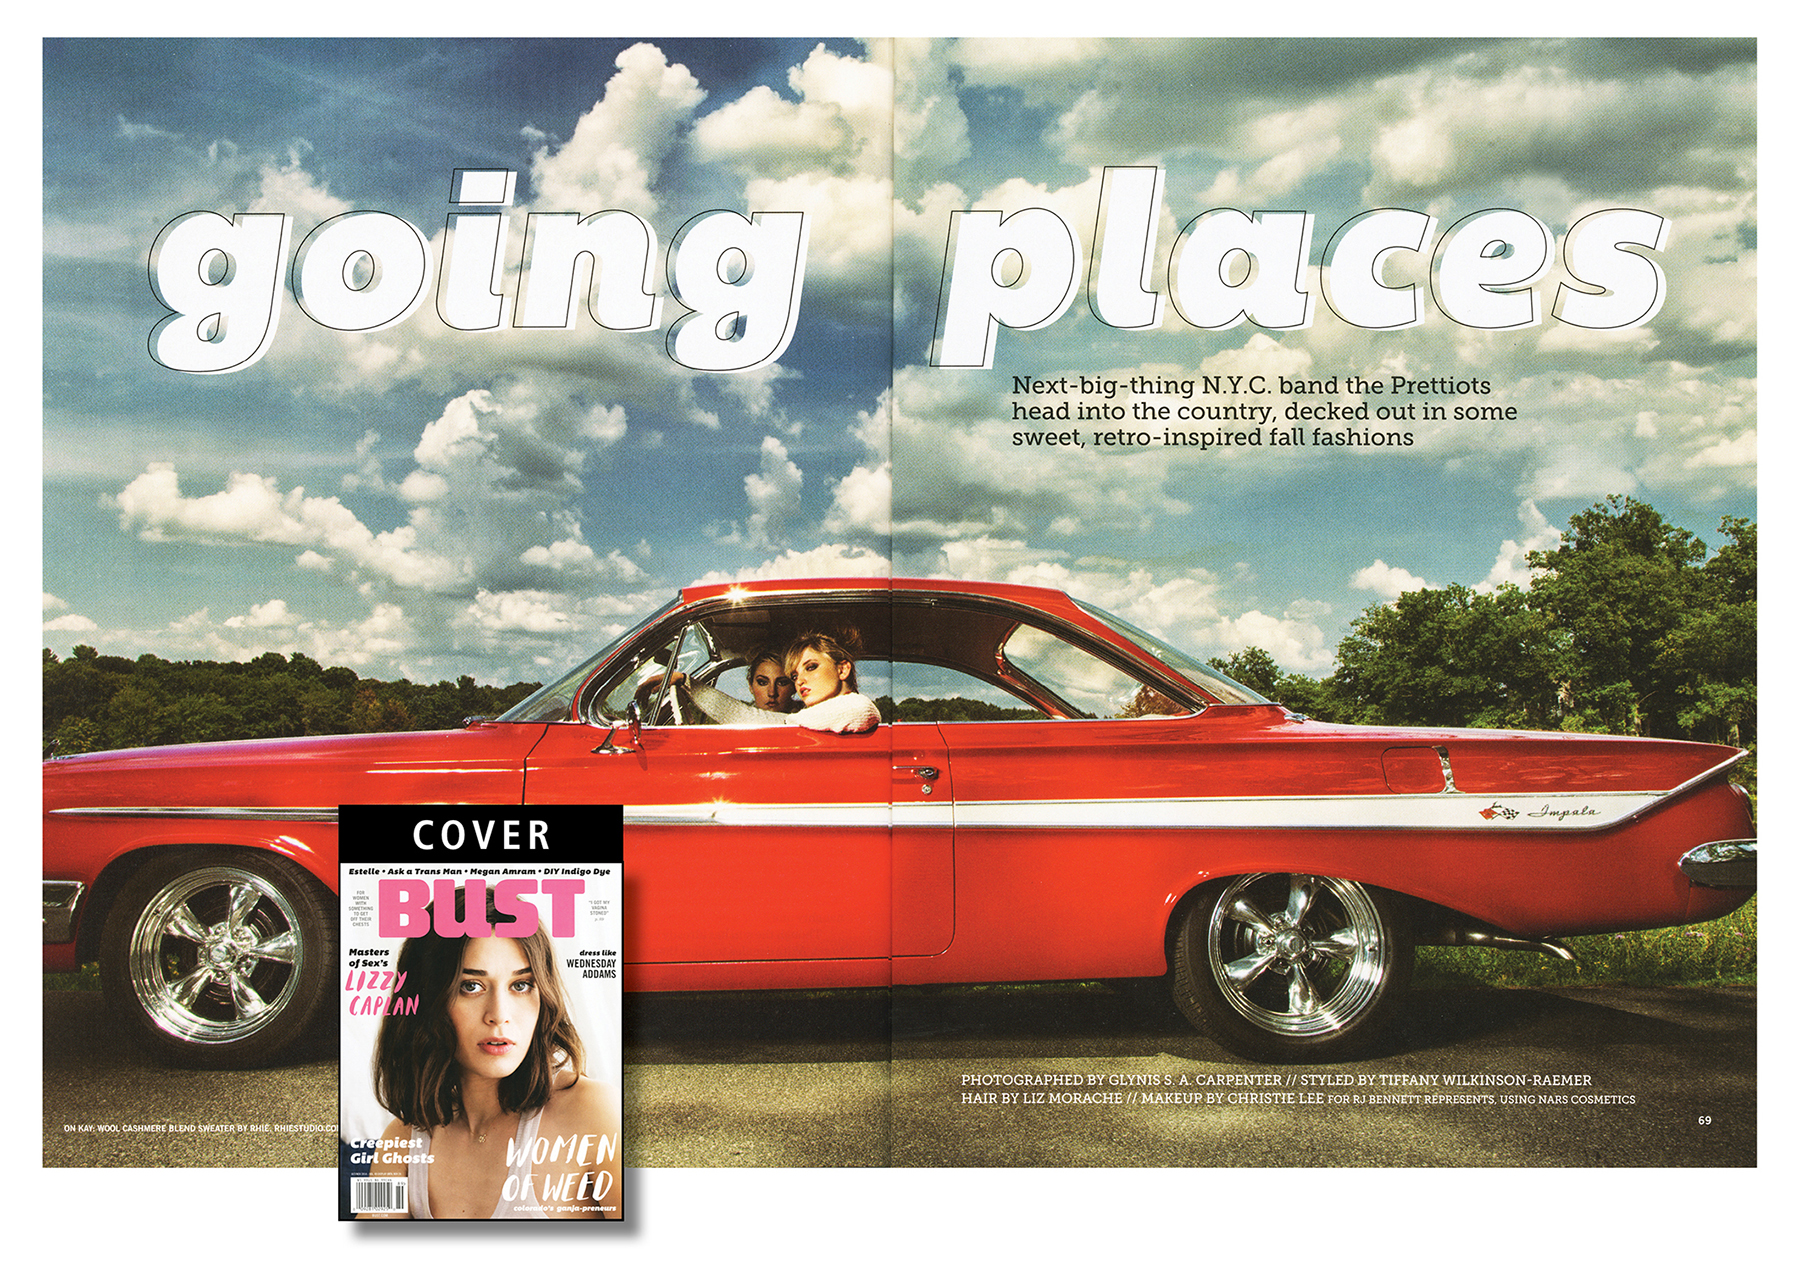 November 2014 photo spread from Bust magazine with vintage Impala.